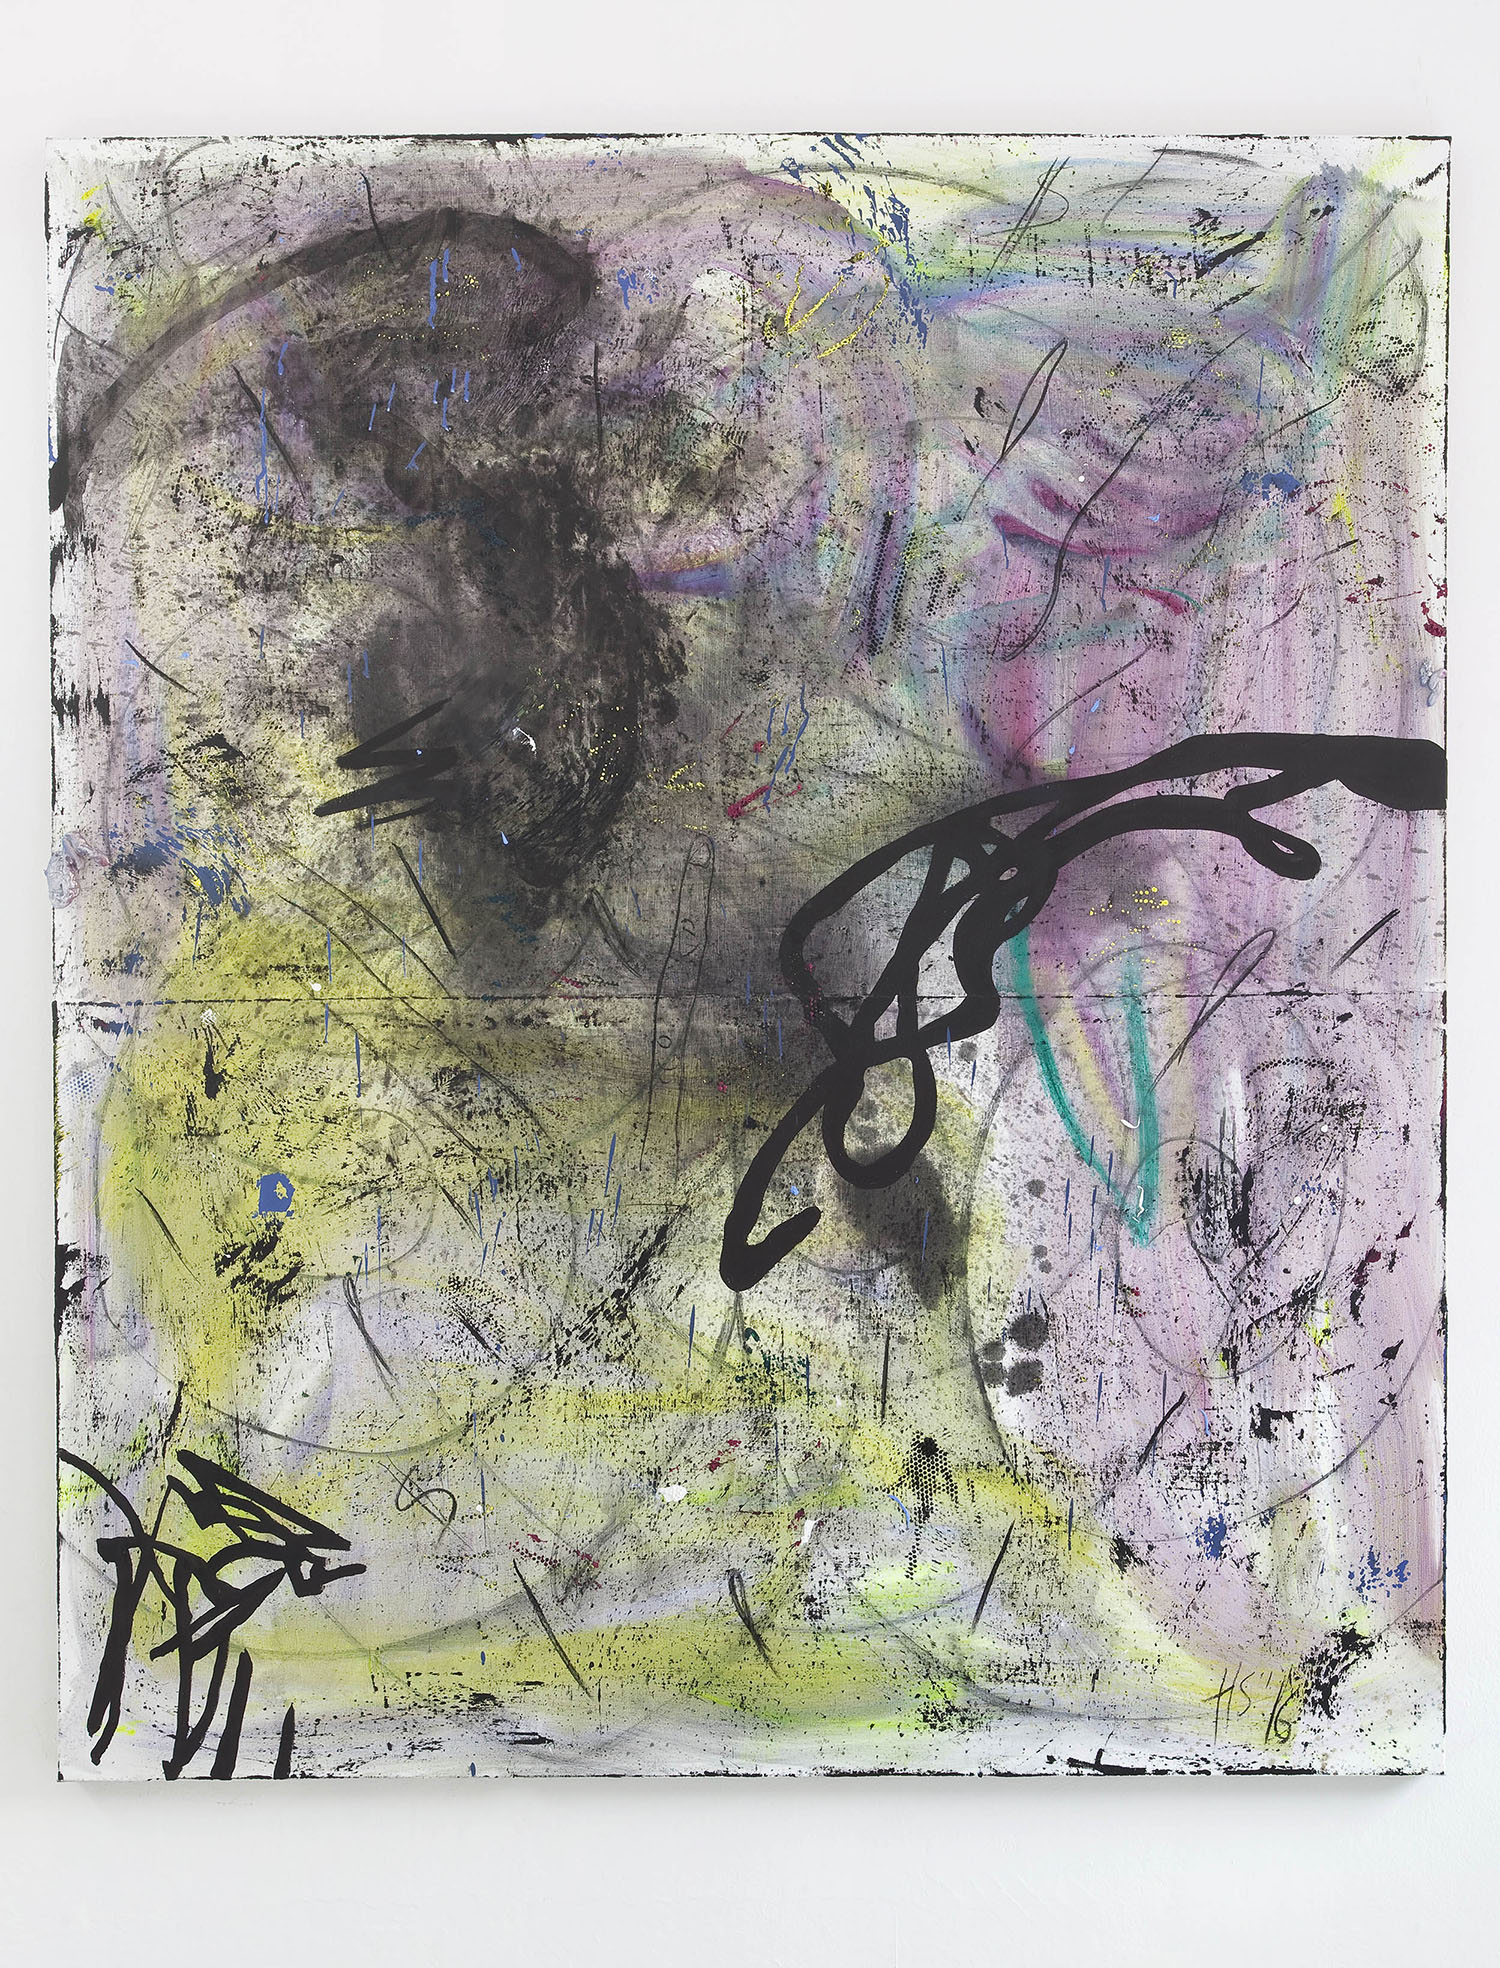 16 - Henning Strassburger Psycho Truth 2016 oil and foam on canvas 200x140 cm - Courtesy Studiolo Milan copia 2